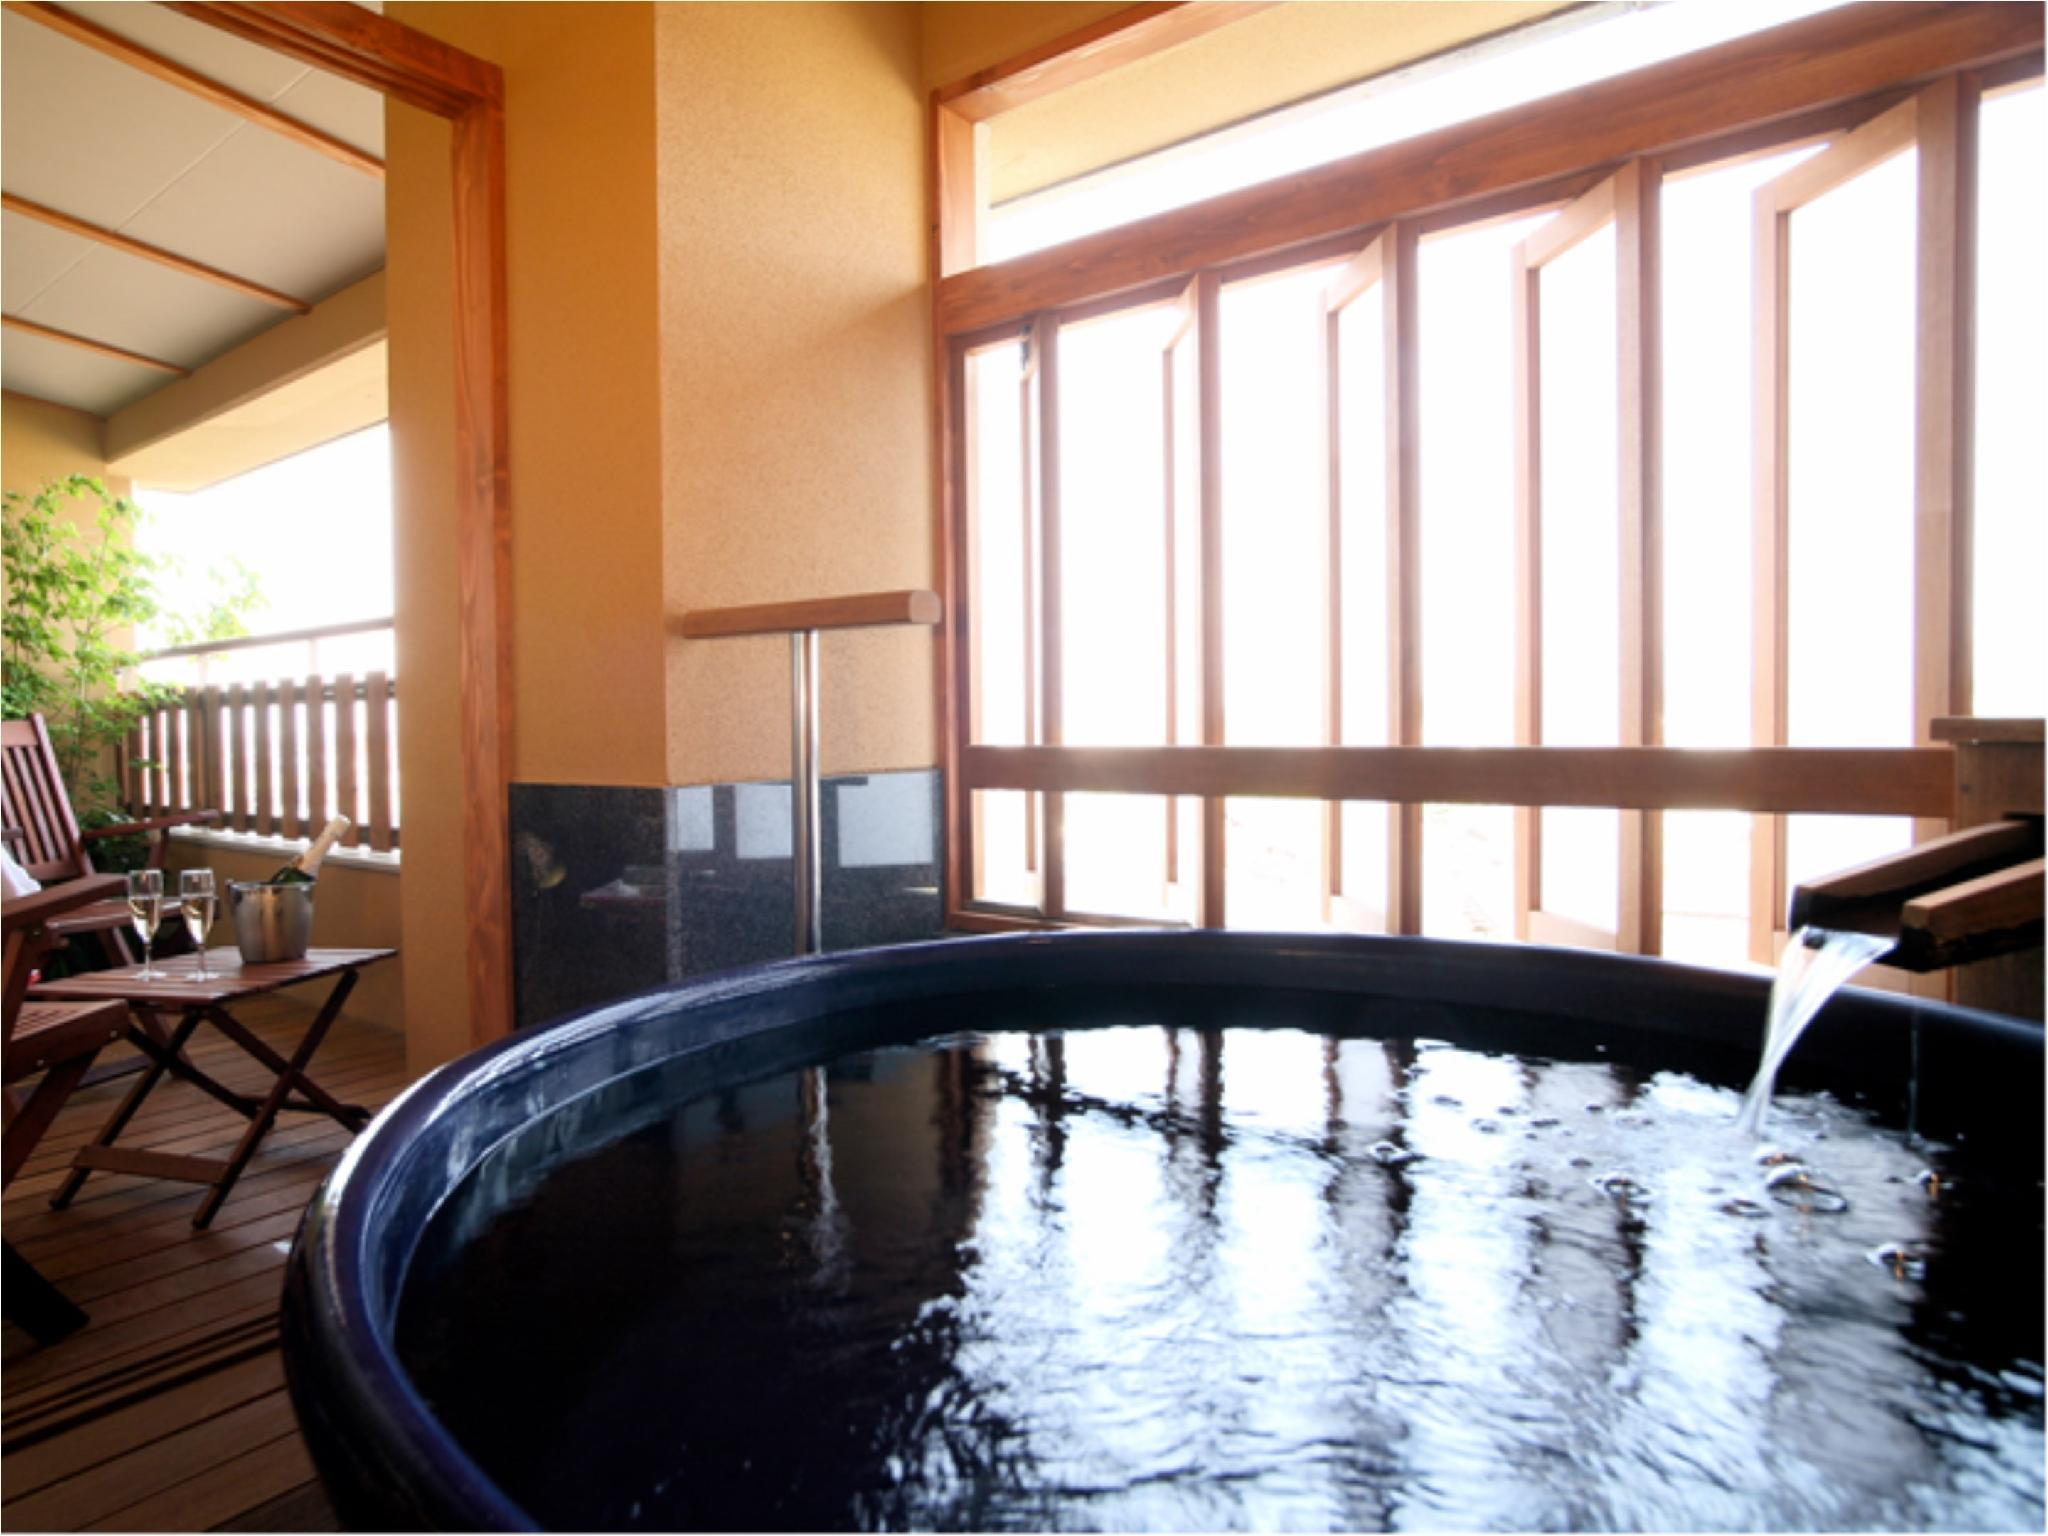 【星の棟 Aタイプ】露天風呂付エグゼクティブ和洋室 (Executive Japanese/Western-style Room with Open-air Bath (Type A, Hoshi-no-To Wing))